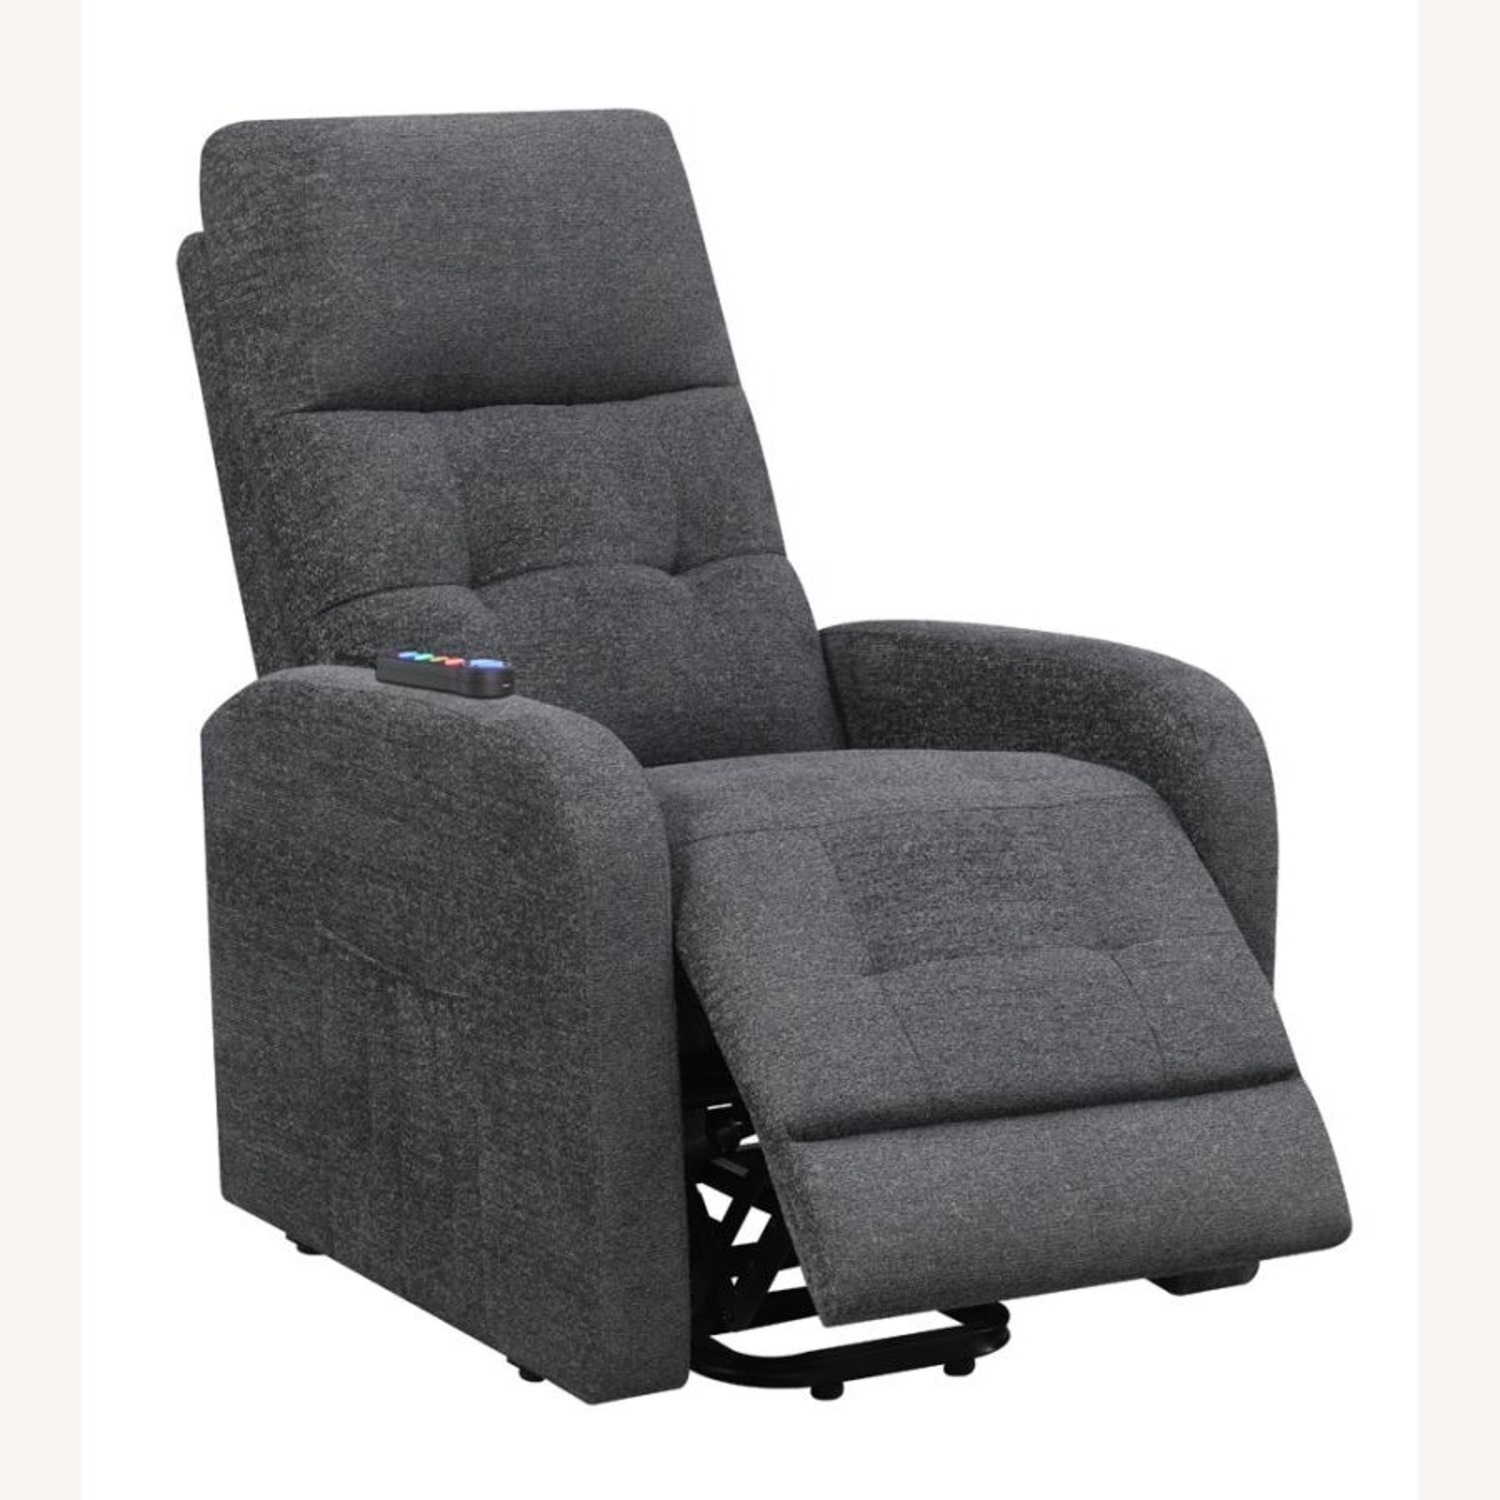 Power Lift Massage Chair In Charcoal Fabric - image-1